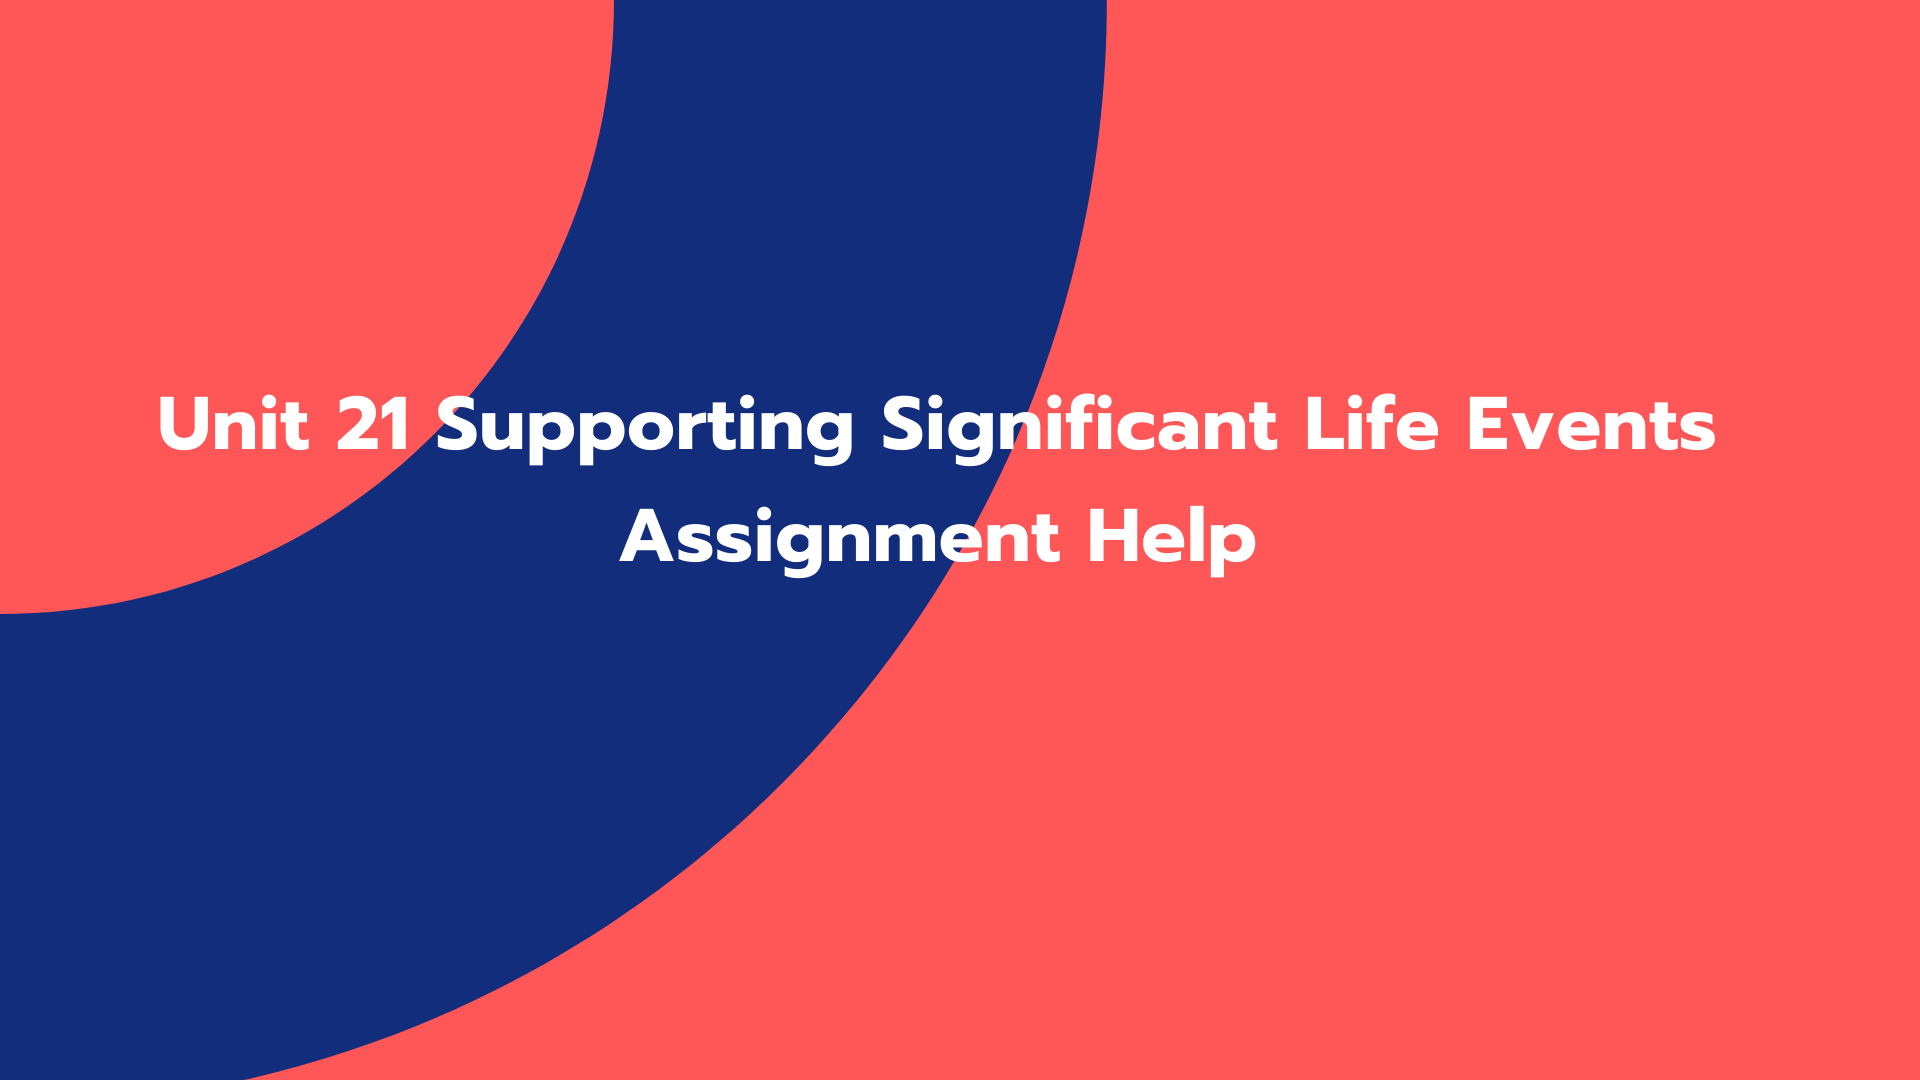 Unit 21 Supporting Significant Life Events Assignment Help